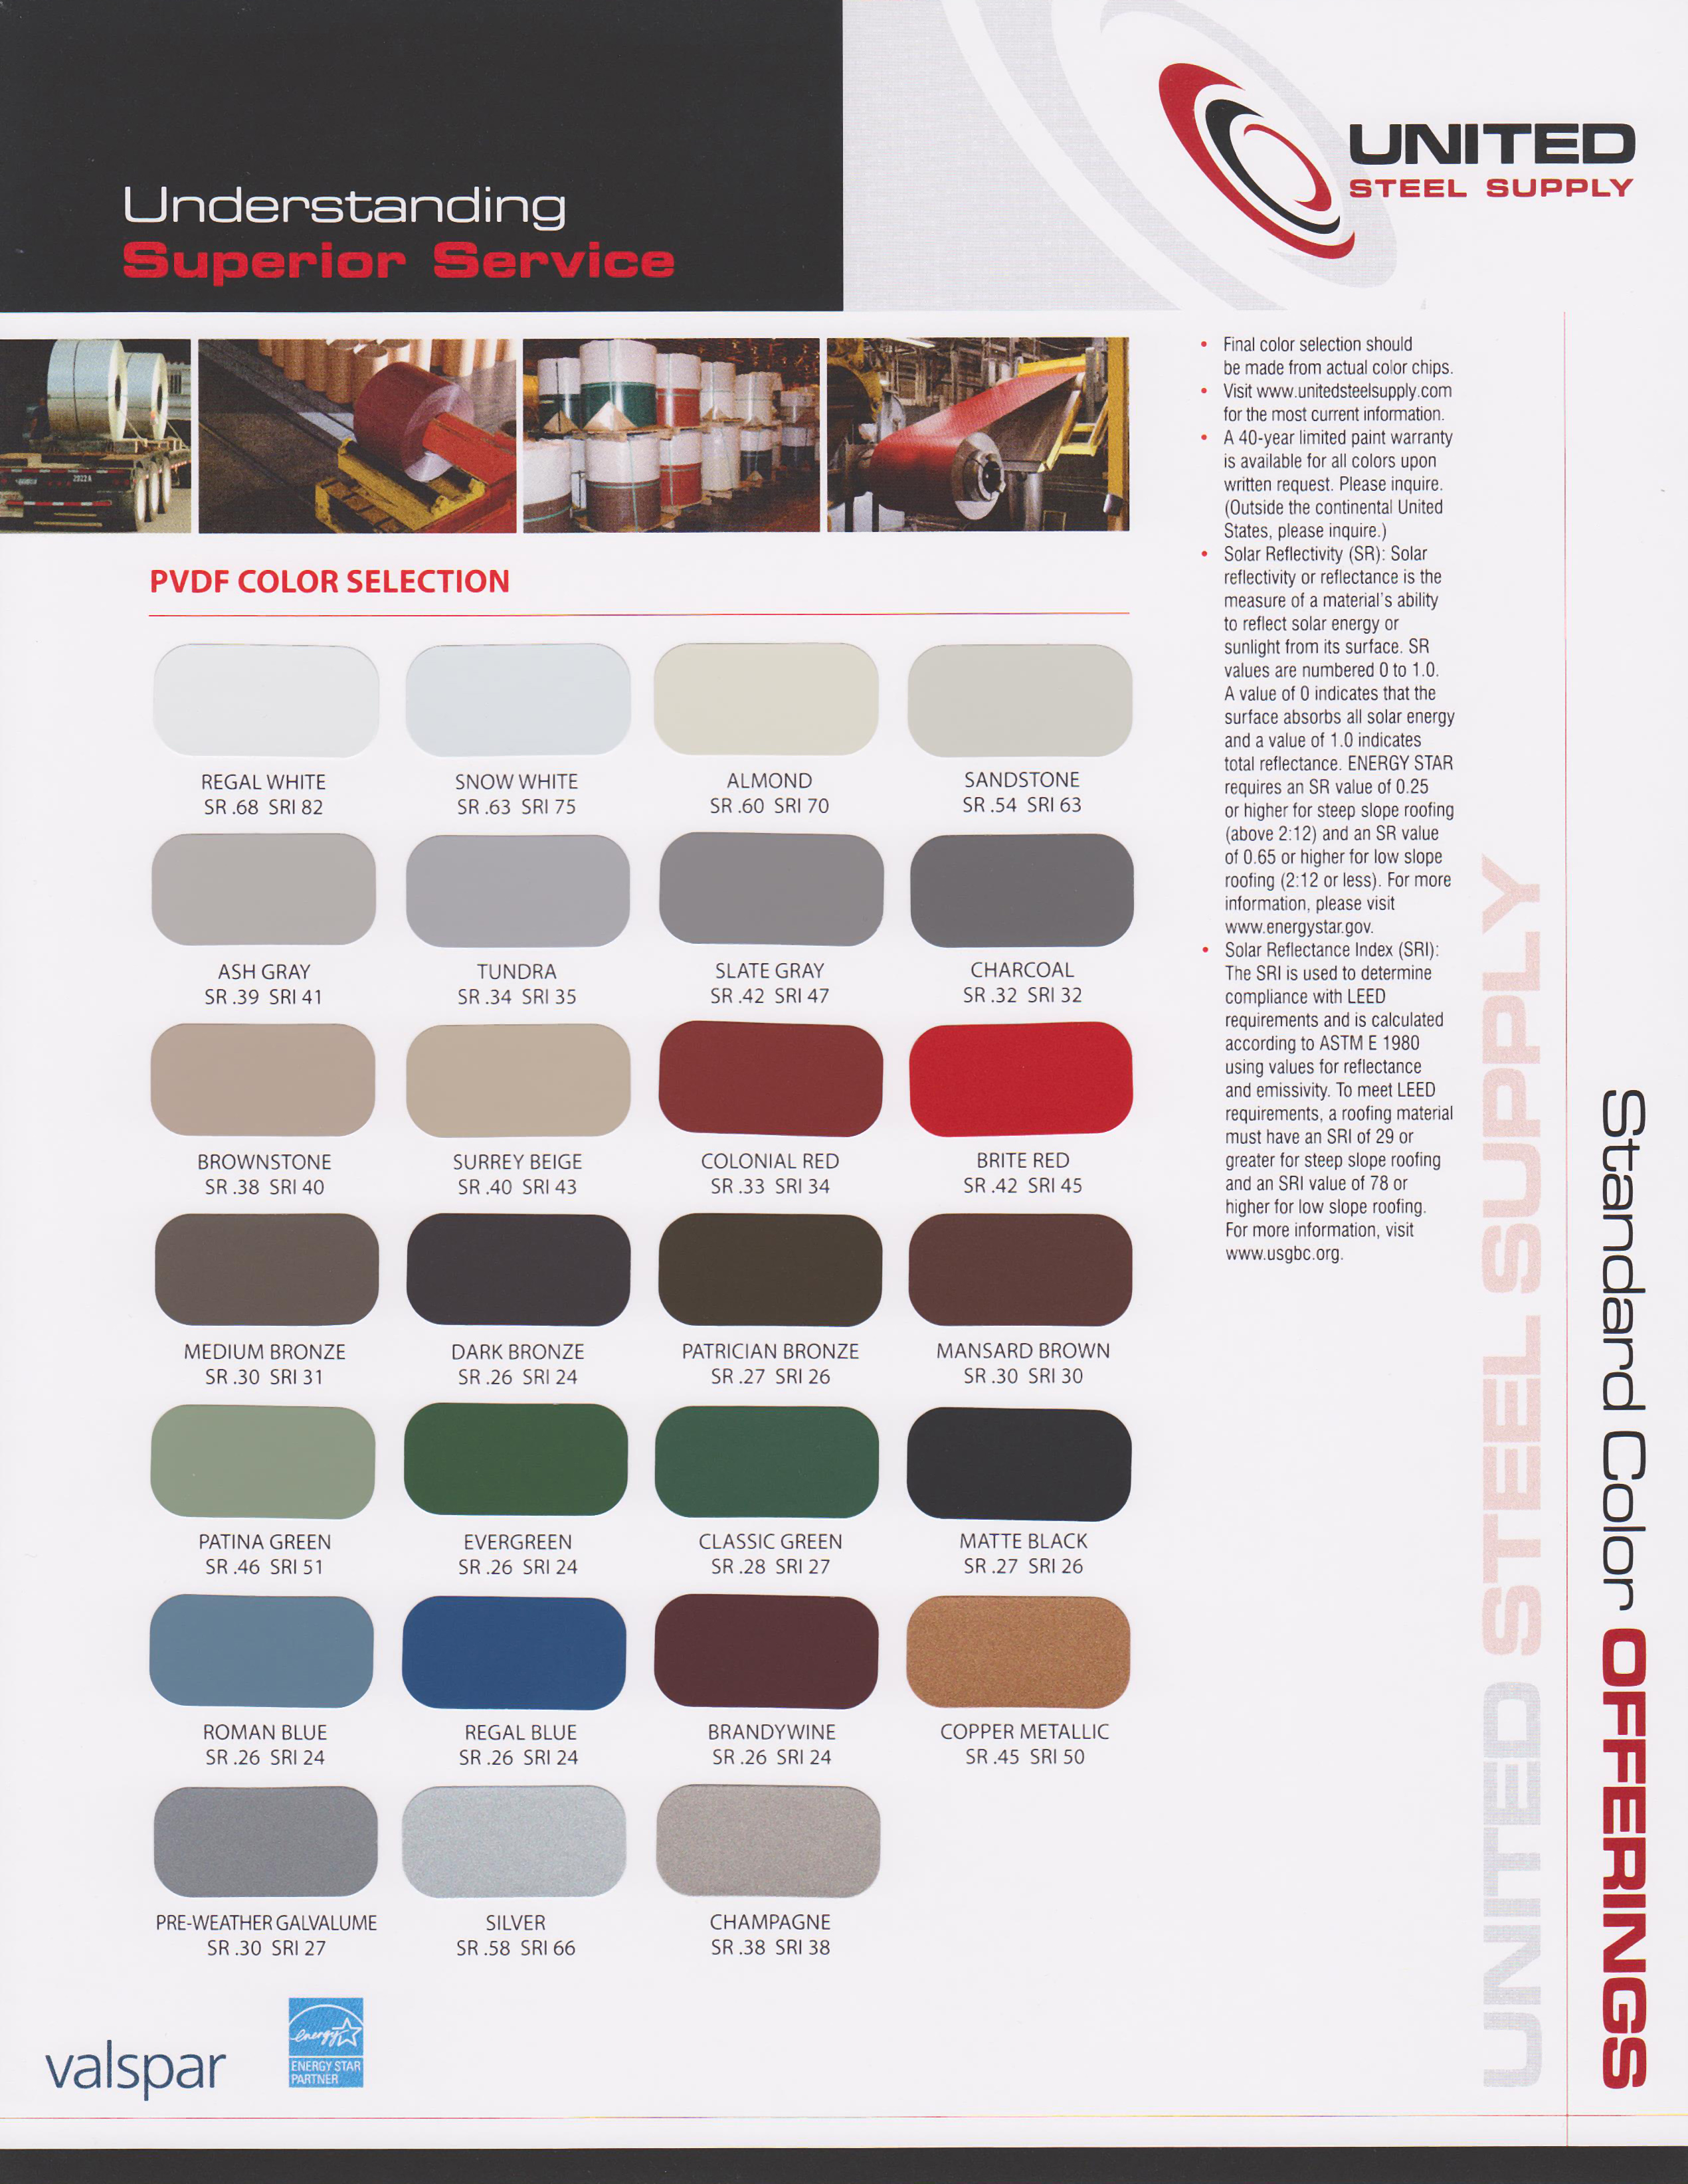 Color selections united steel supply valspar pvdf color chart nvjuhfo Image collections